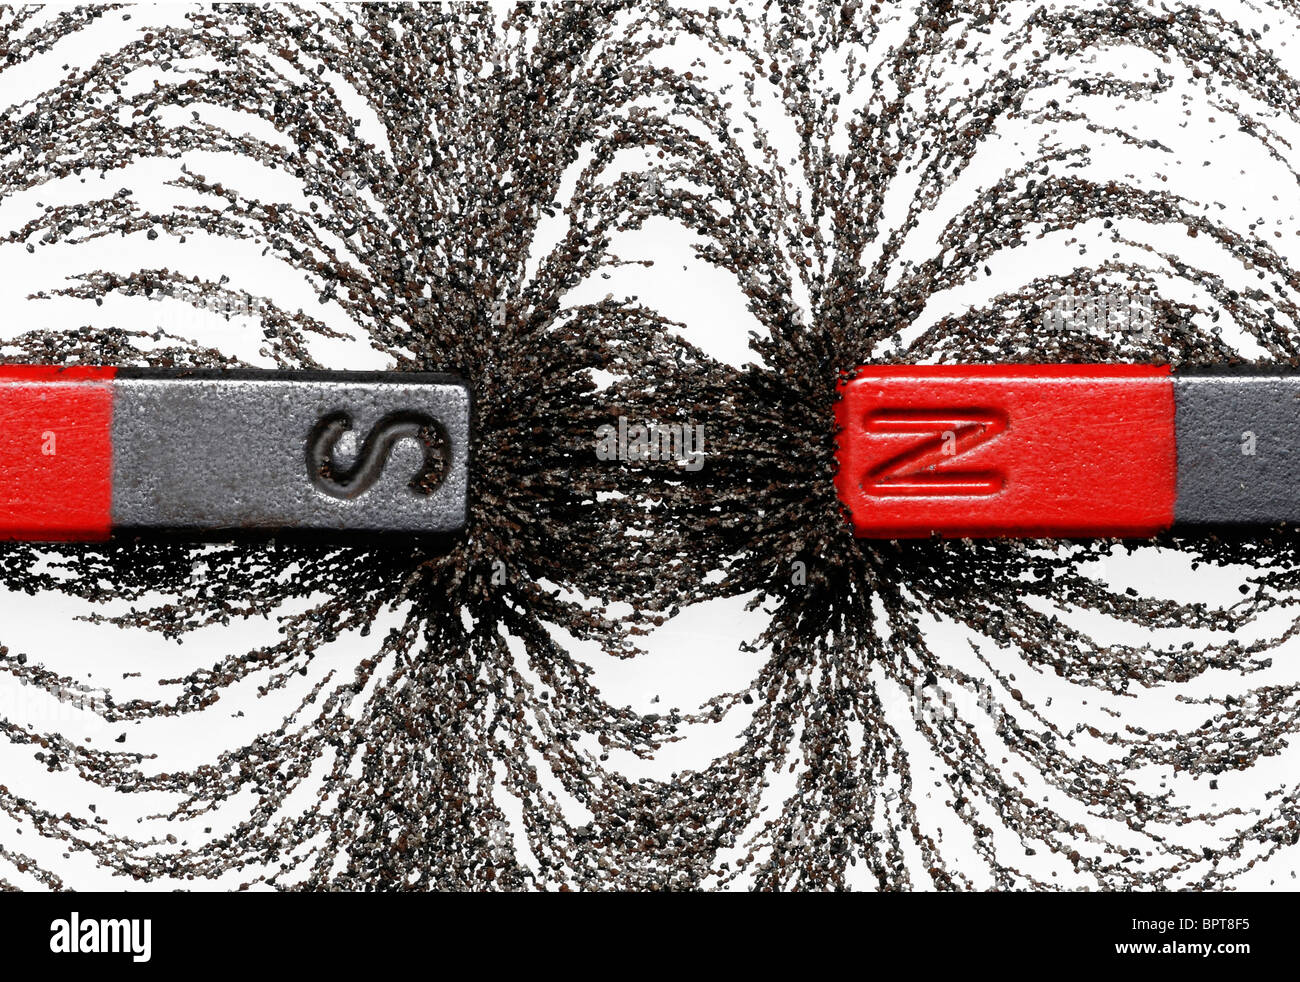 Bar magnets with iron filings showing magnetic attraction between opposite poles - Stock Image